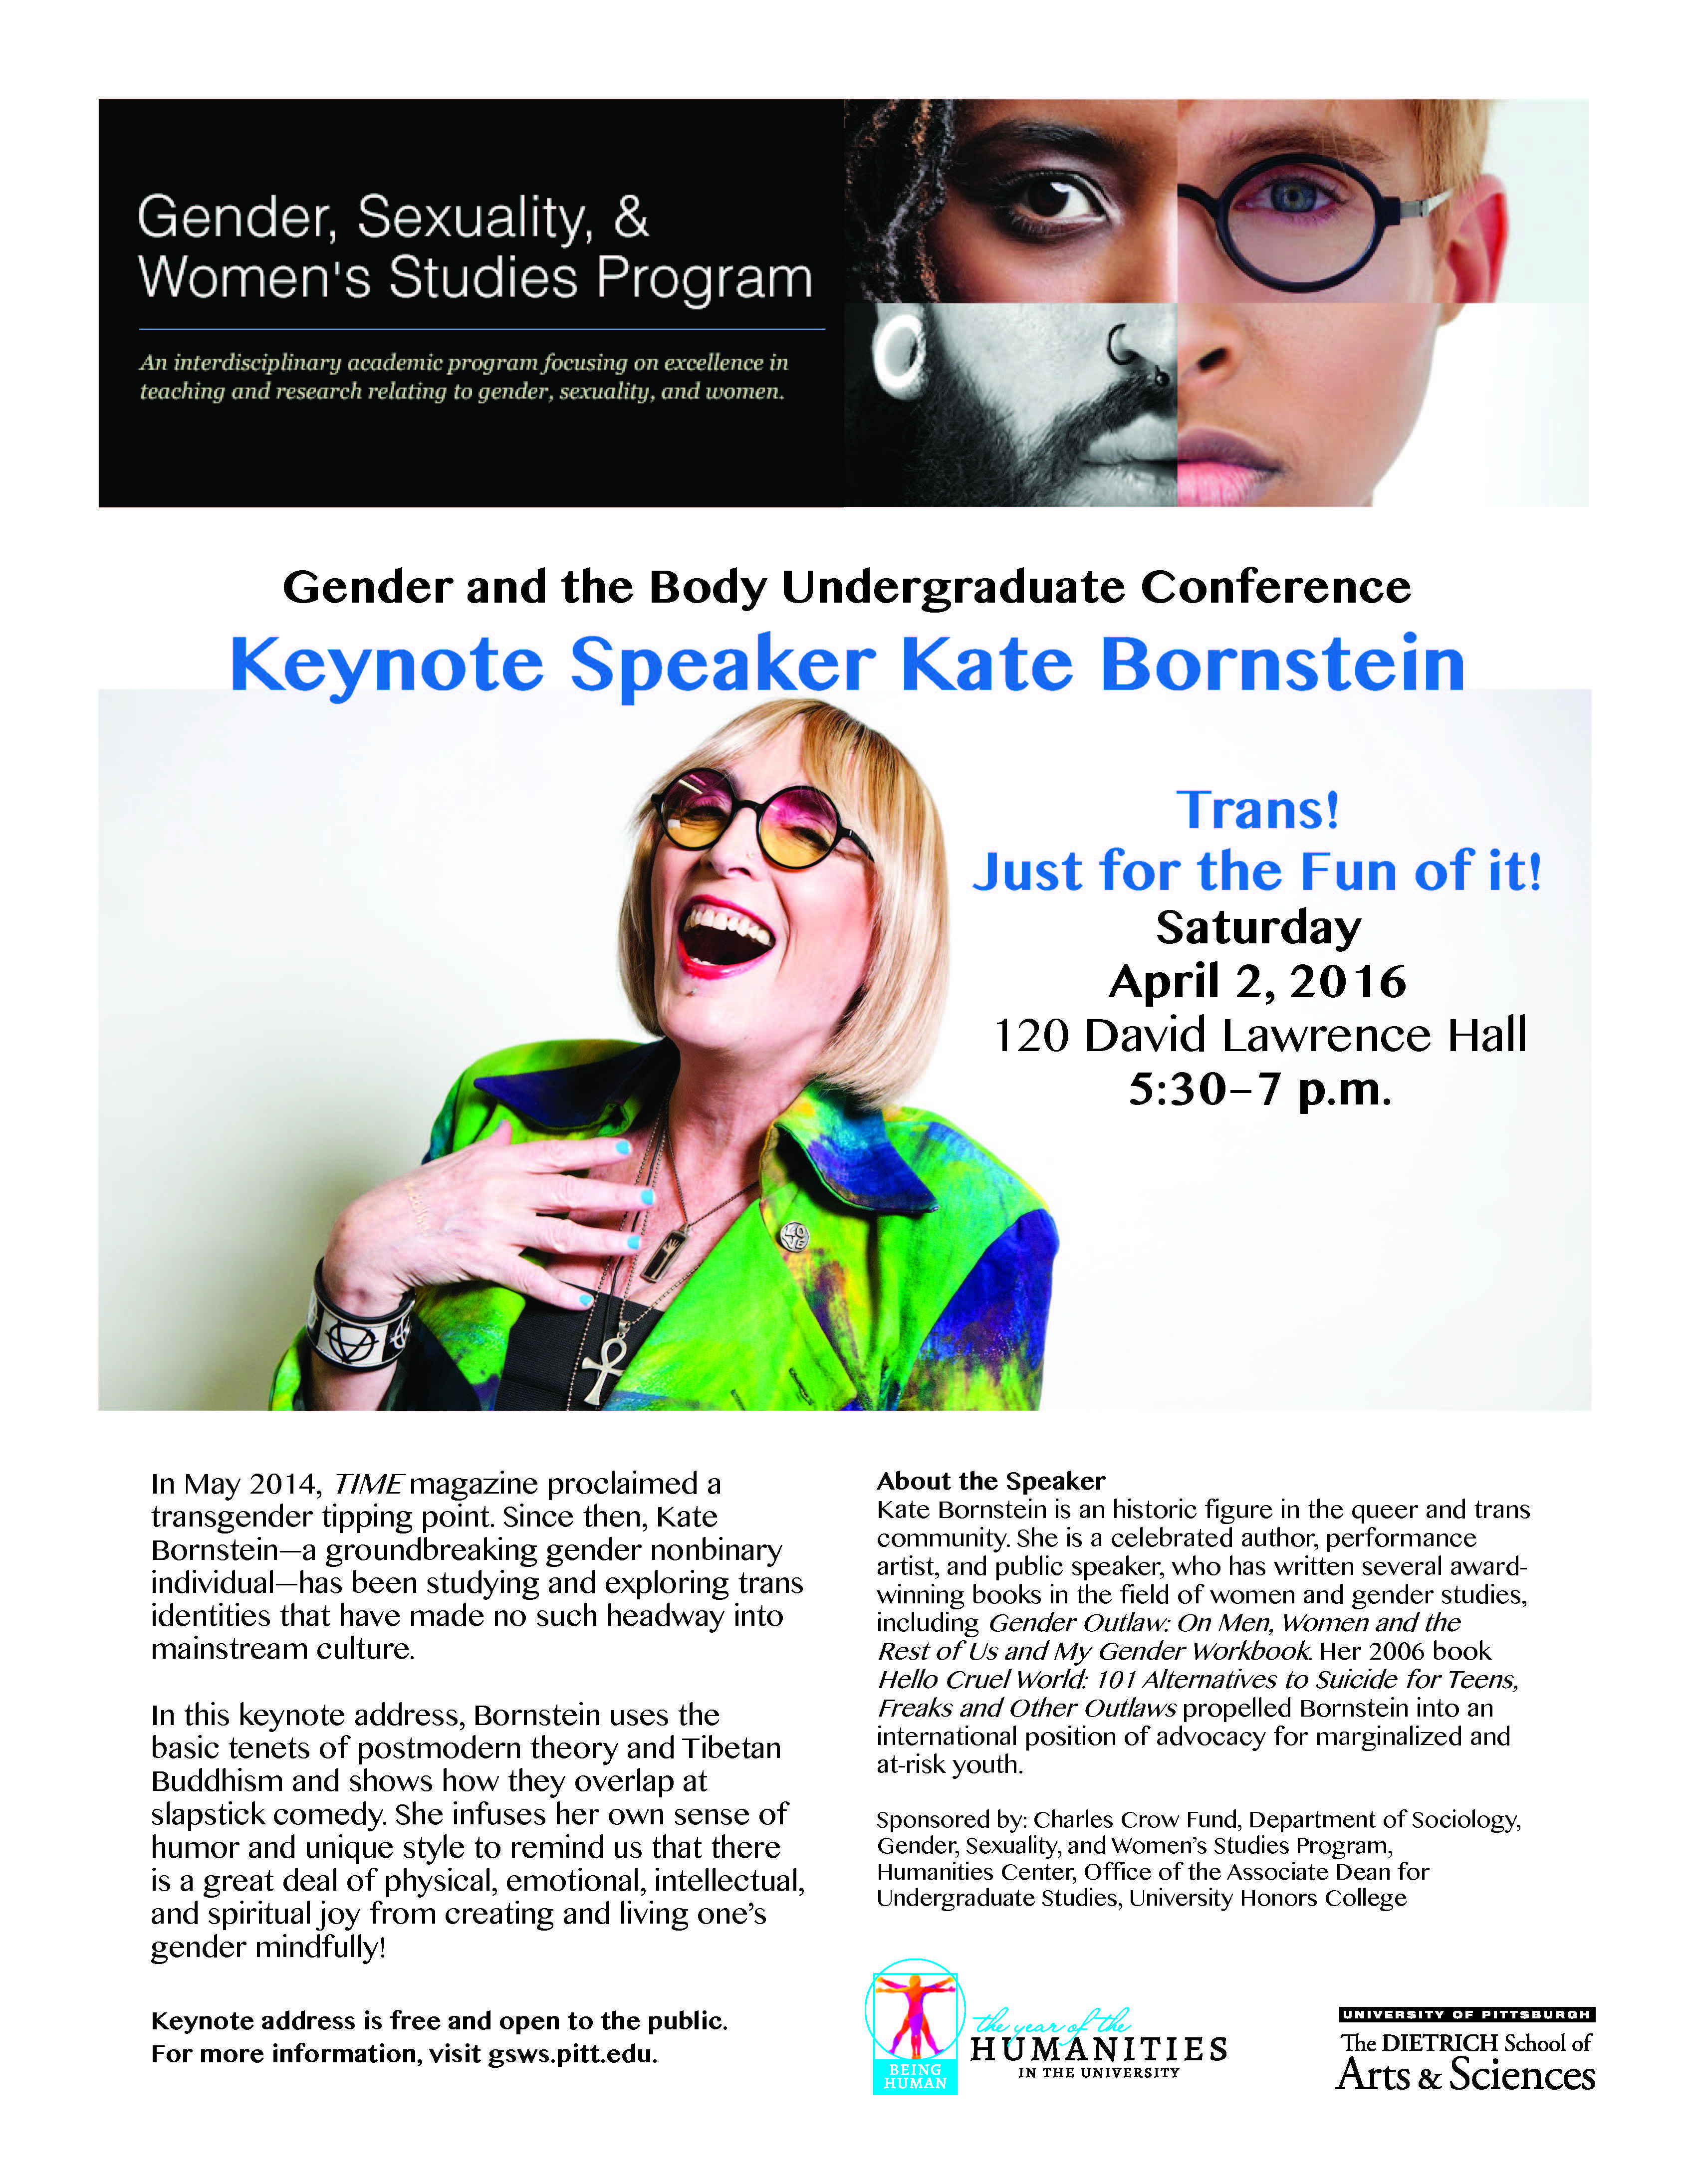 Keynote Address by Dr. Kate Bornstein